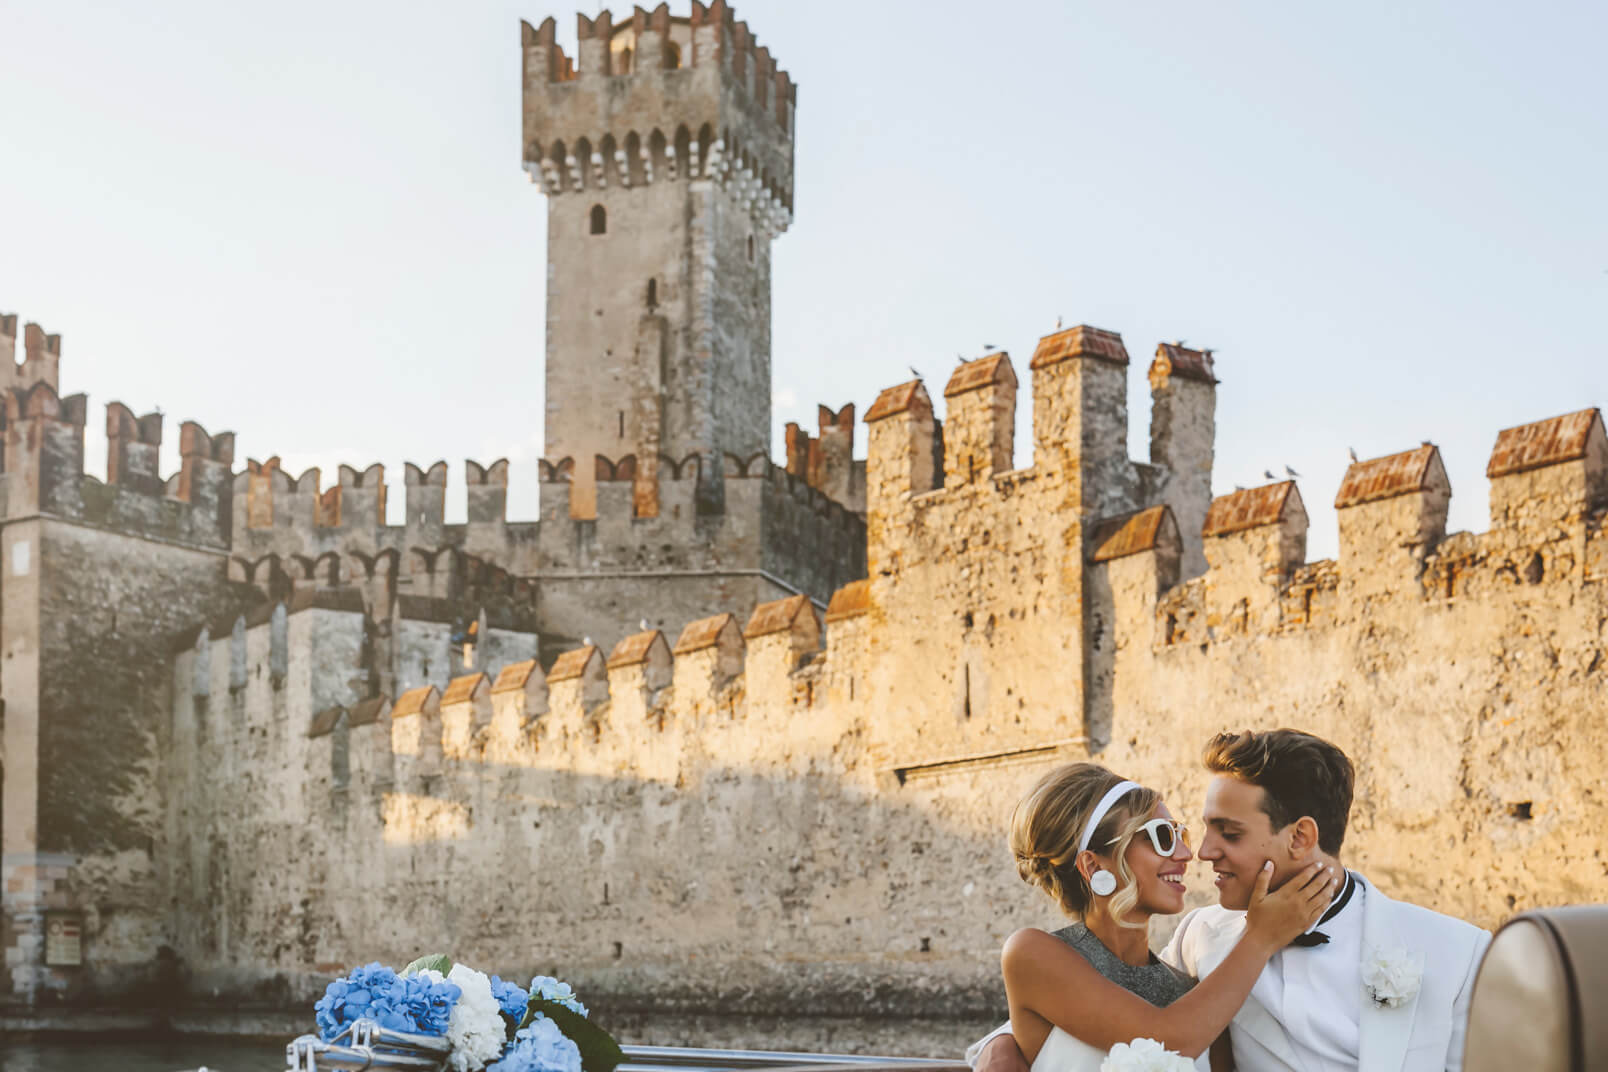 A Kiss with the Sirmione castle in the background.